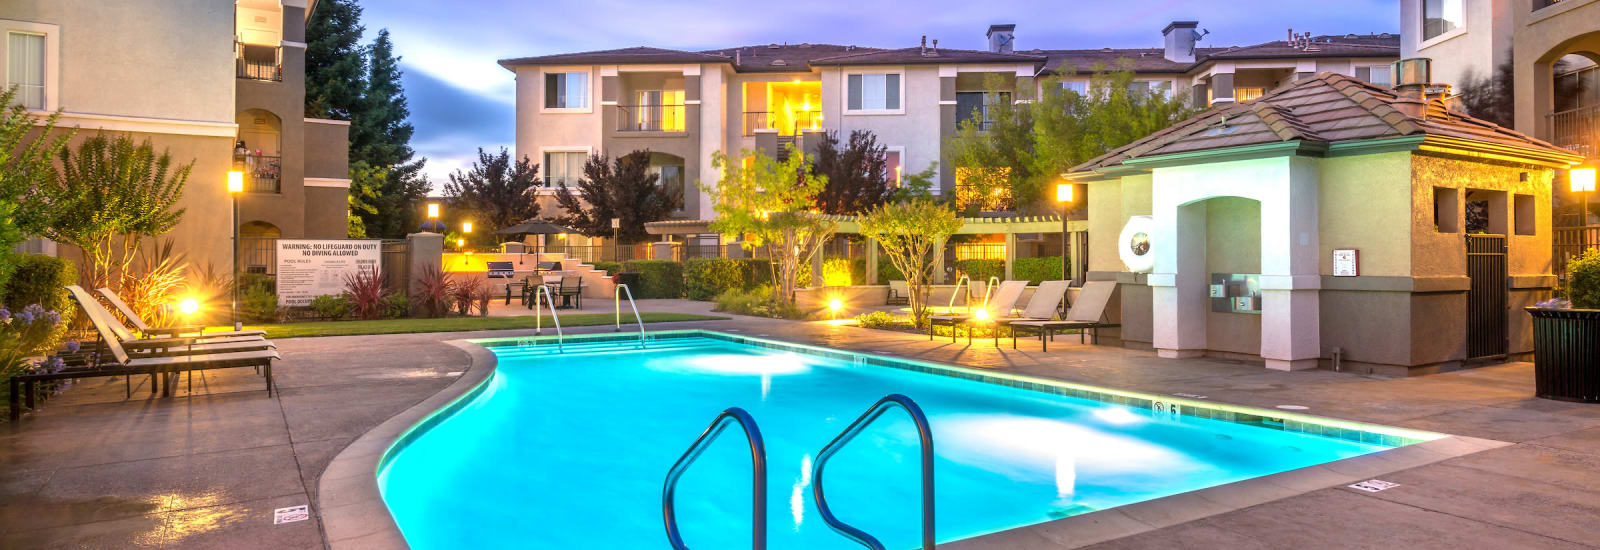 Apartments in Fairfield CA